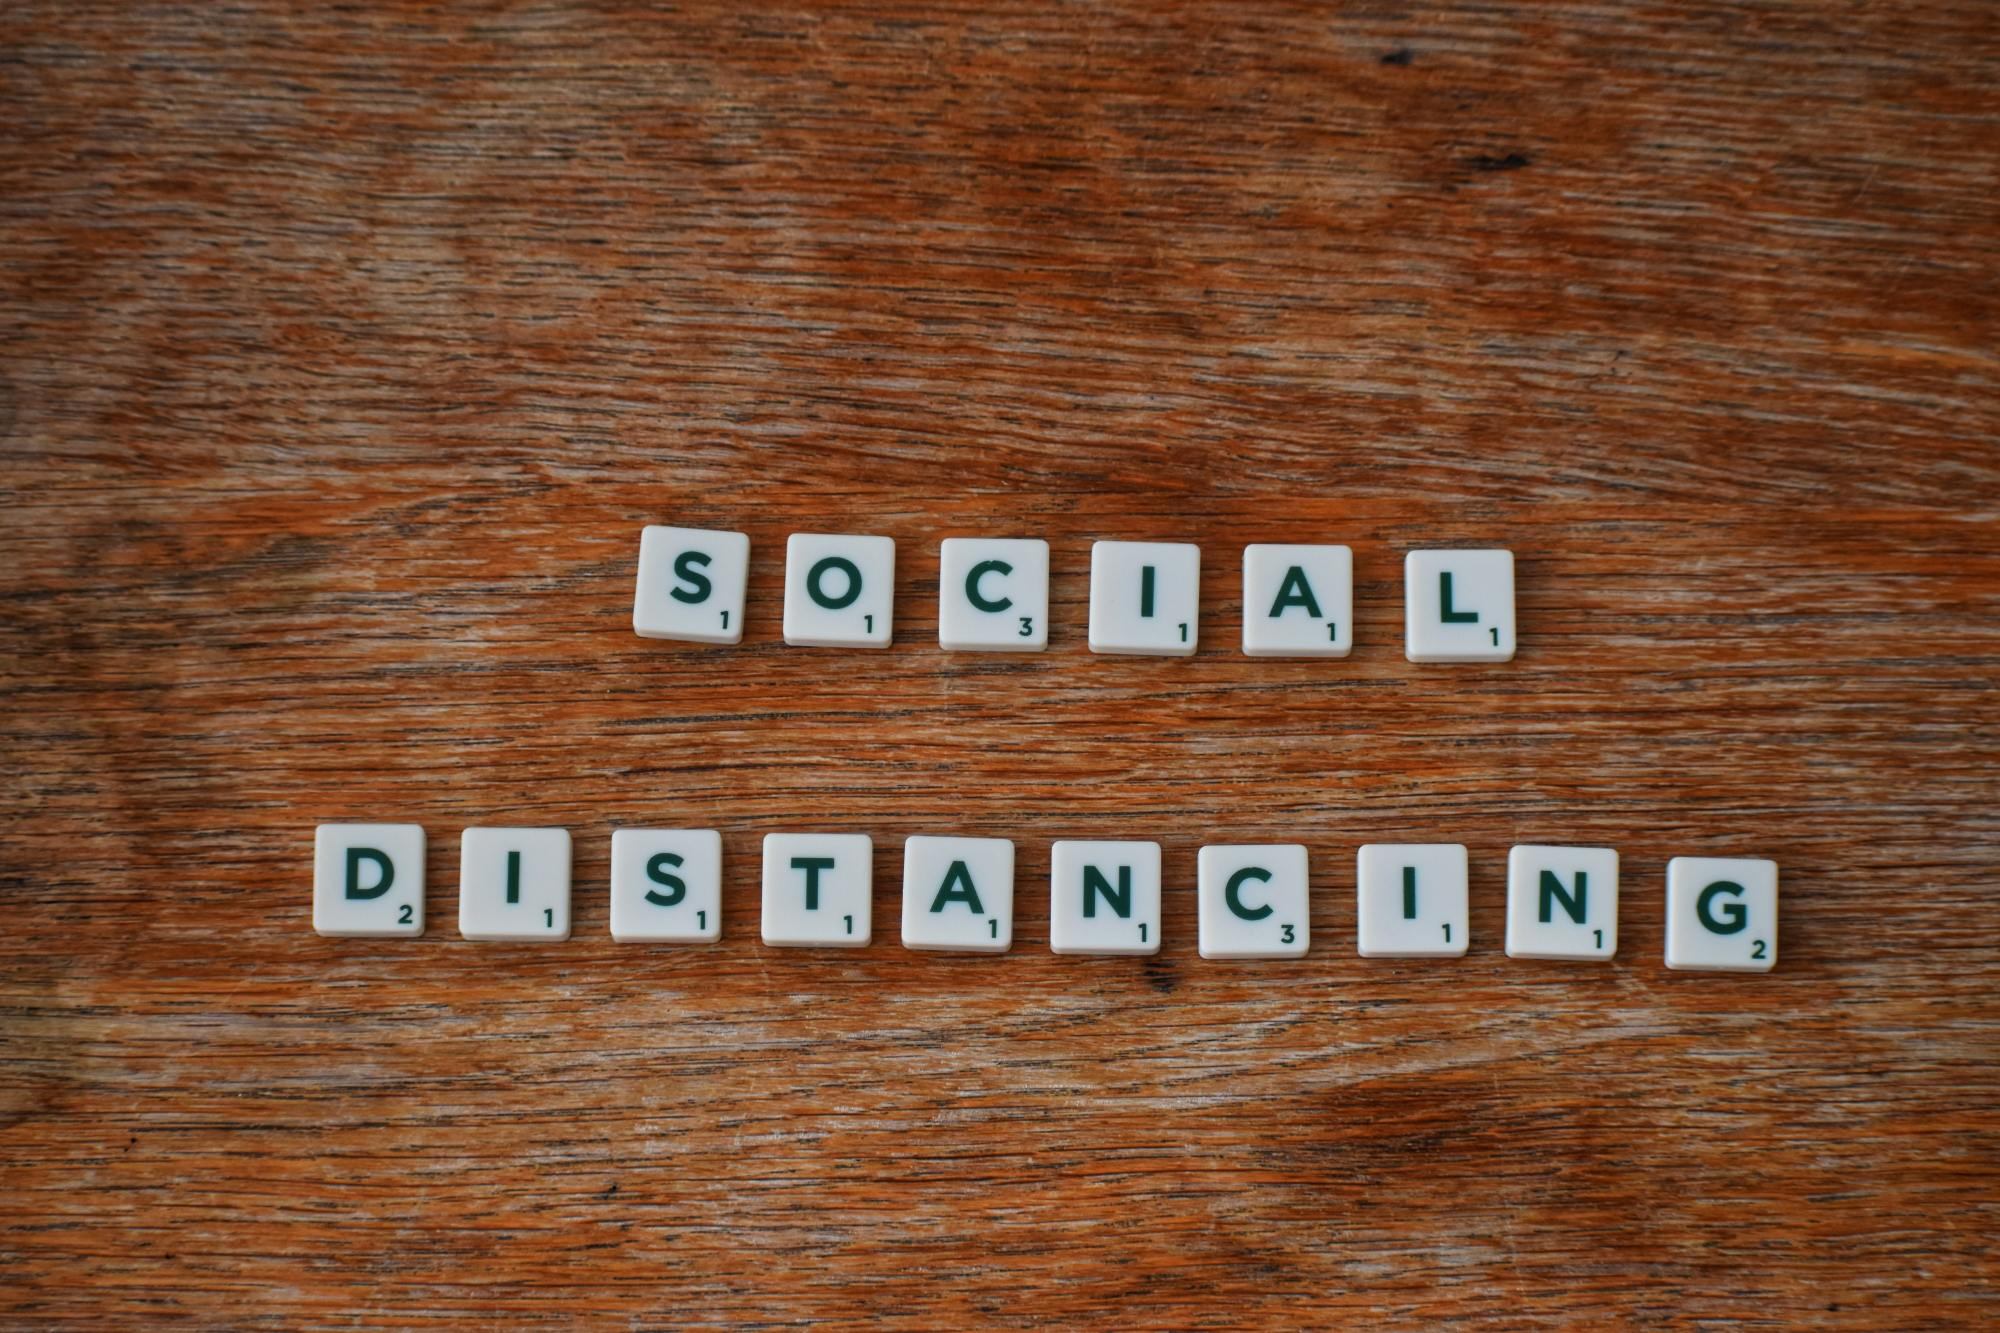 Social Distancing Signage - Workplaces Get Creative